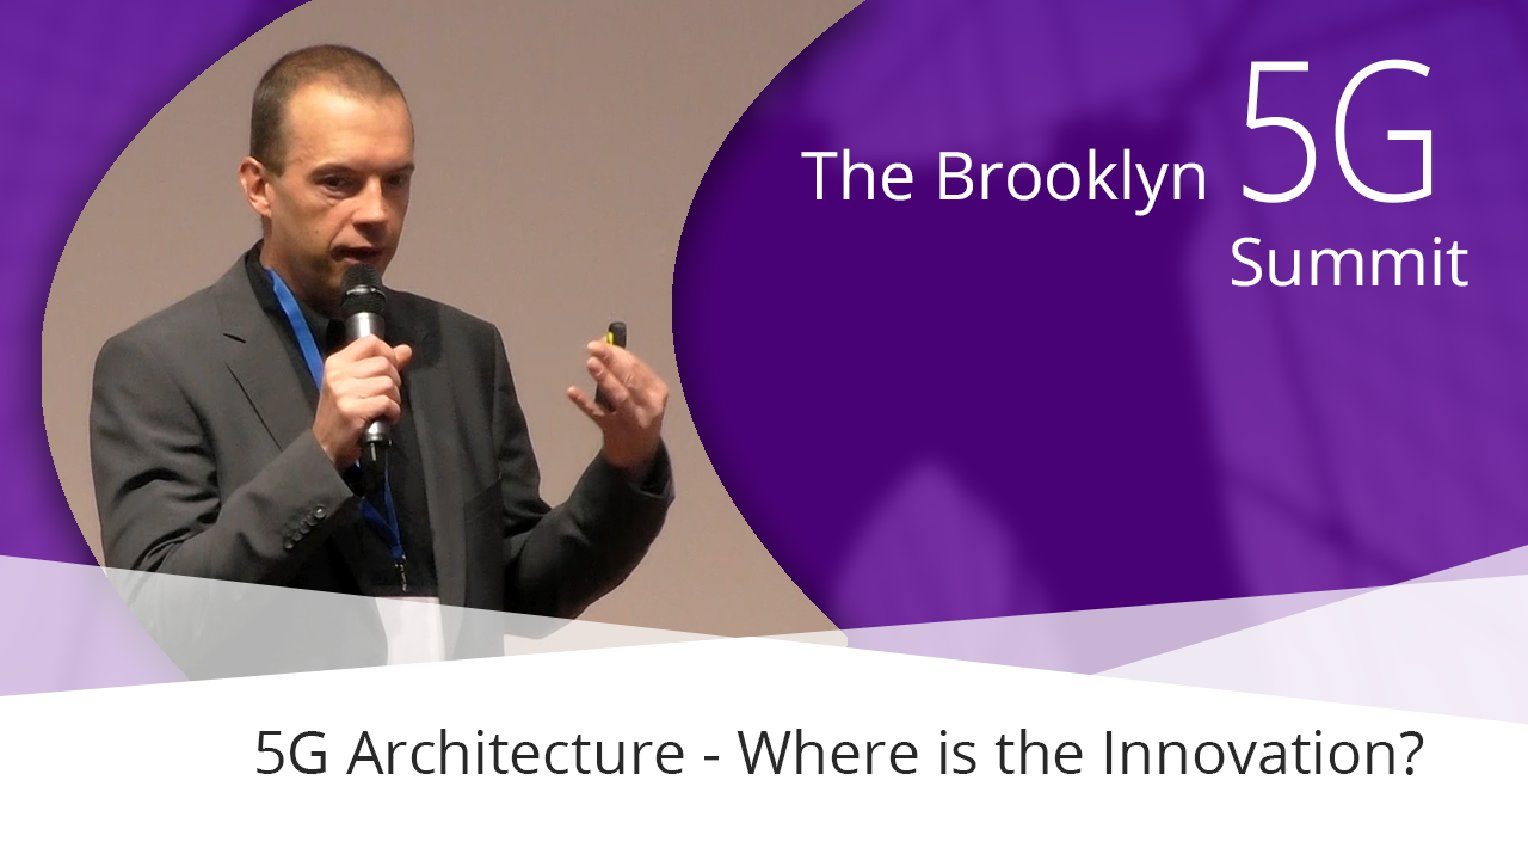 5G Architecture - Where is the Innovation? Franz Seiser: Brooklyn 5G Summit 2017